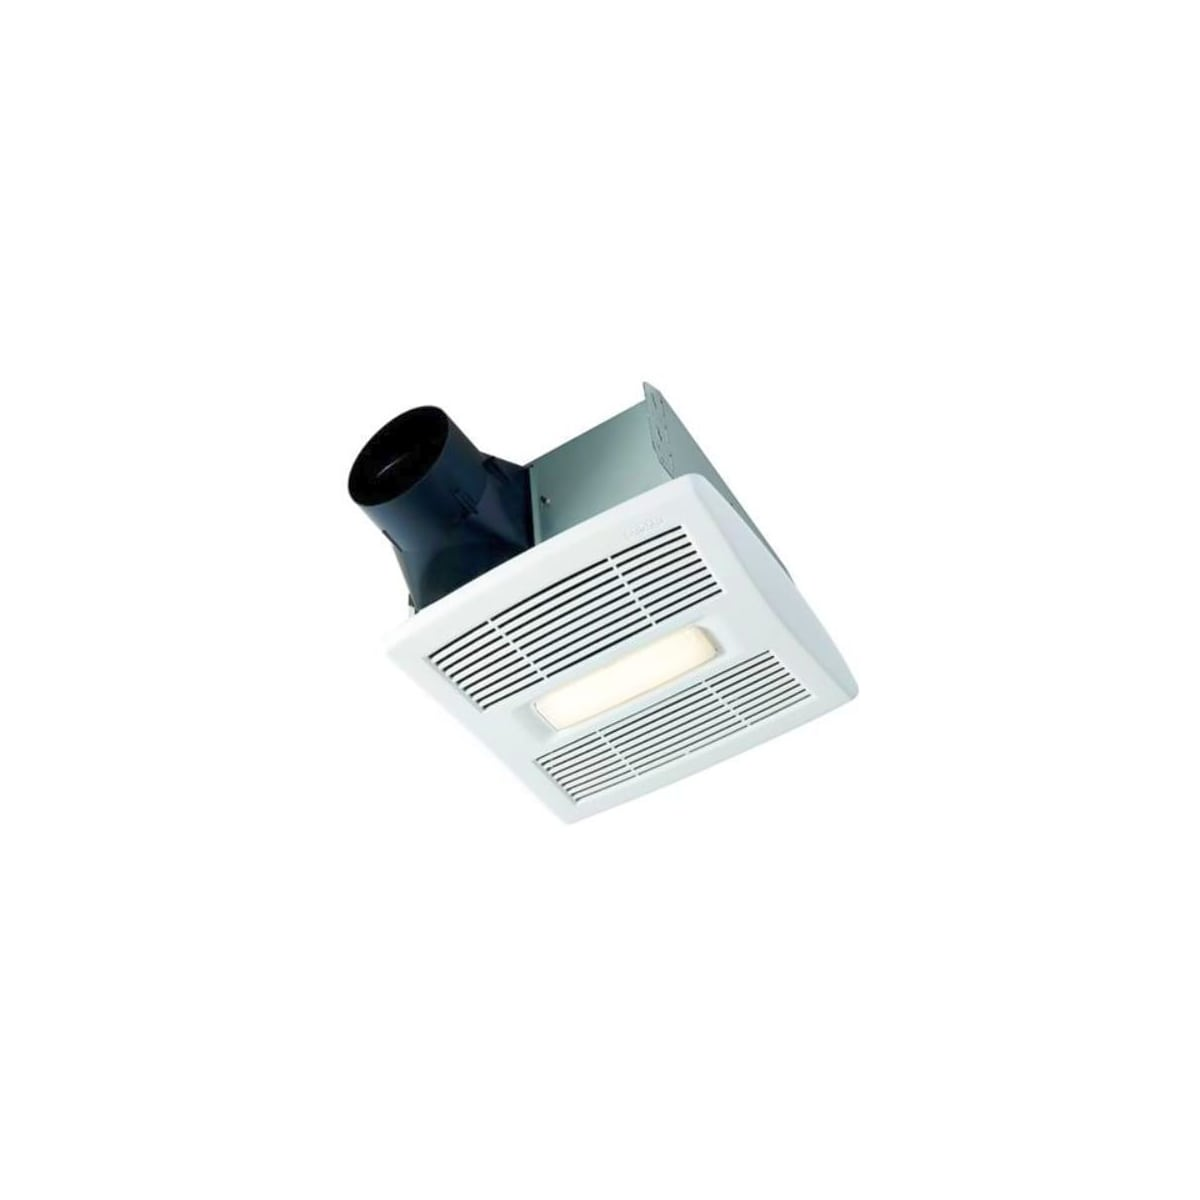 hight resolution of broan invent series bathroom exhaust fan with led light 110 cfm 1 0 sones humidity sensing energy star certified ae110sl